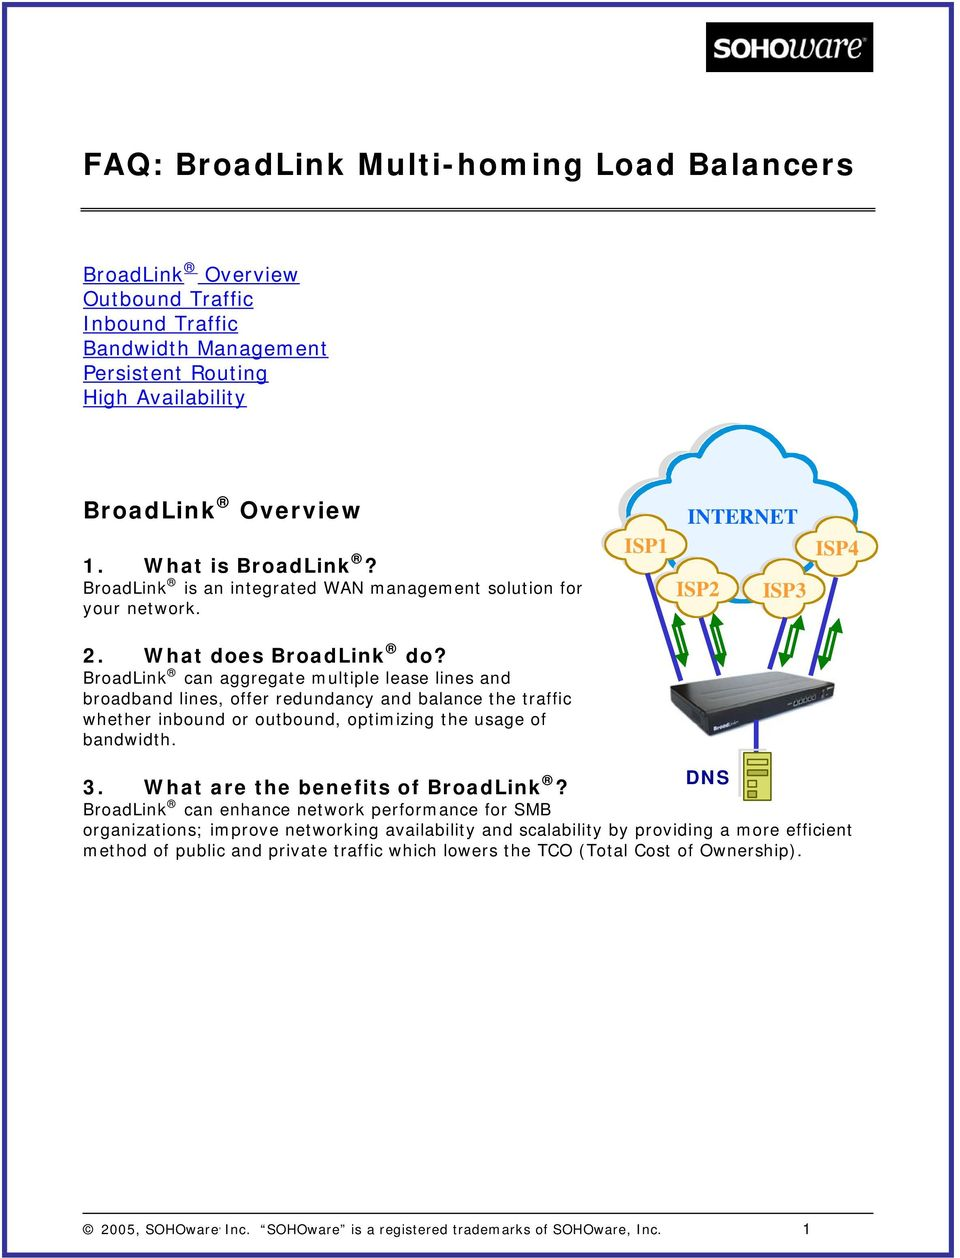 BroadLink can aggregate multiple lease lines and broadband lines, offer redundancy and balance the traffic whether inbound or outbound, optimizing the usage of bandwidth. 3.